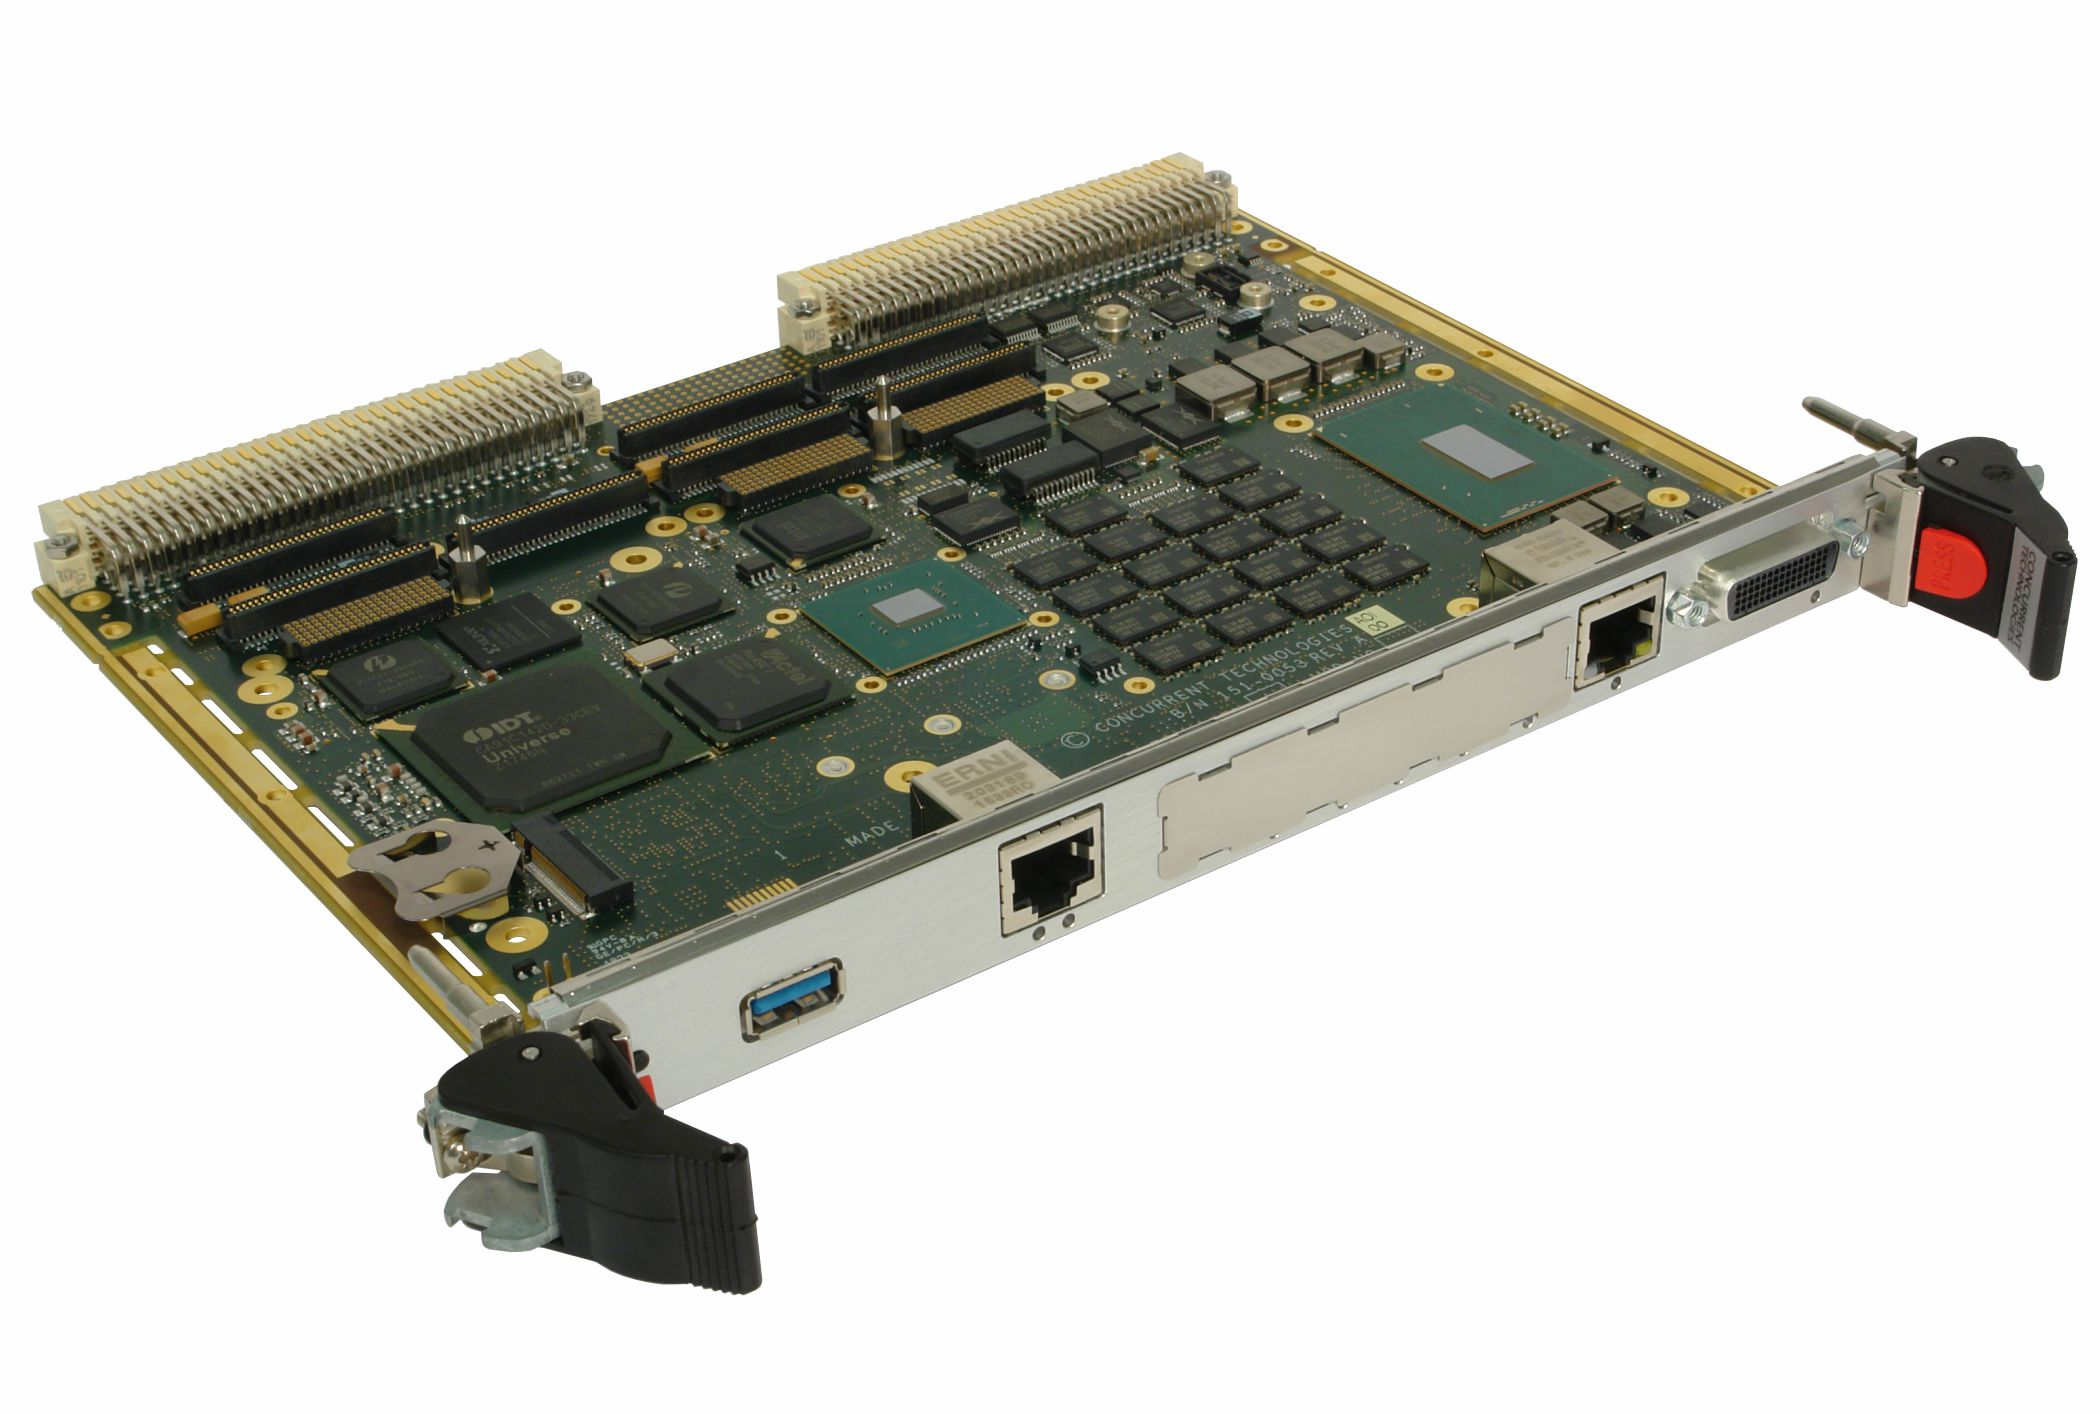 VP B7x/msd VME Processor Board with 6-core Intel® Xeon® processor E-2176M